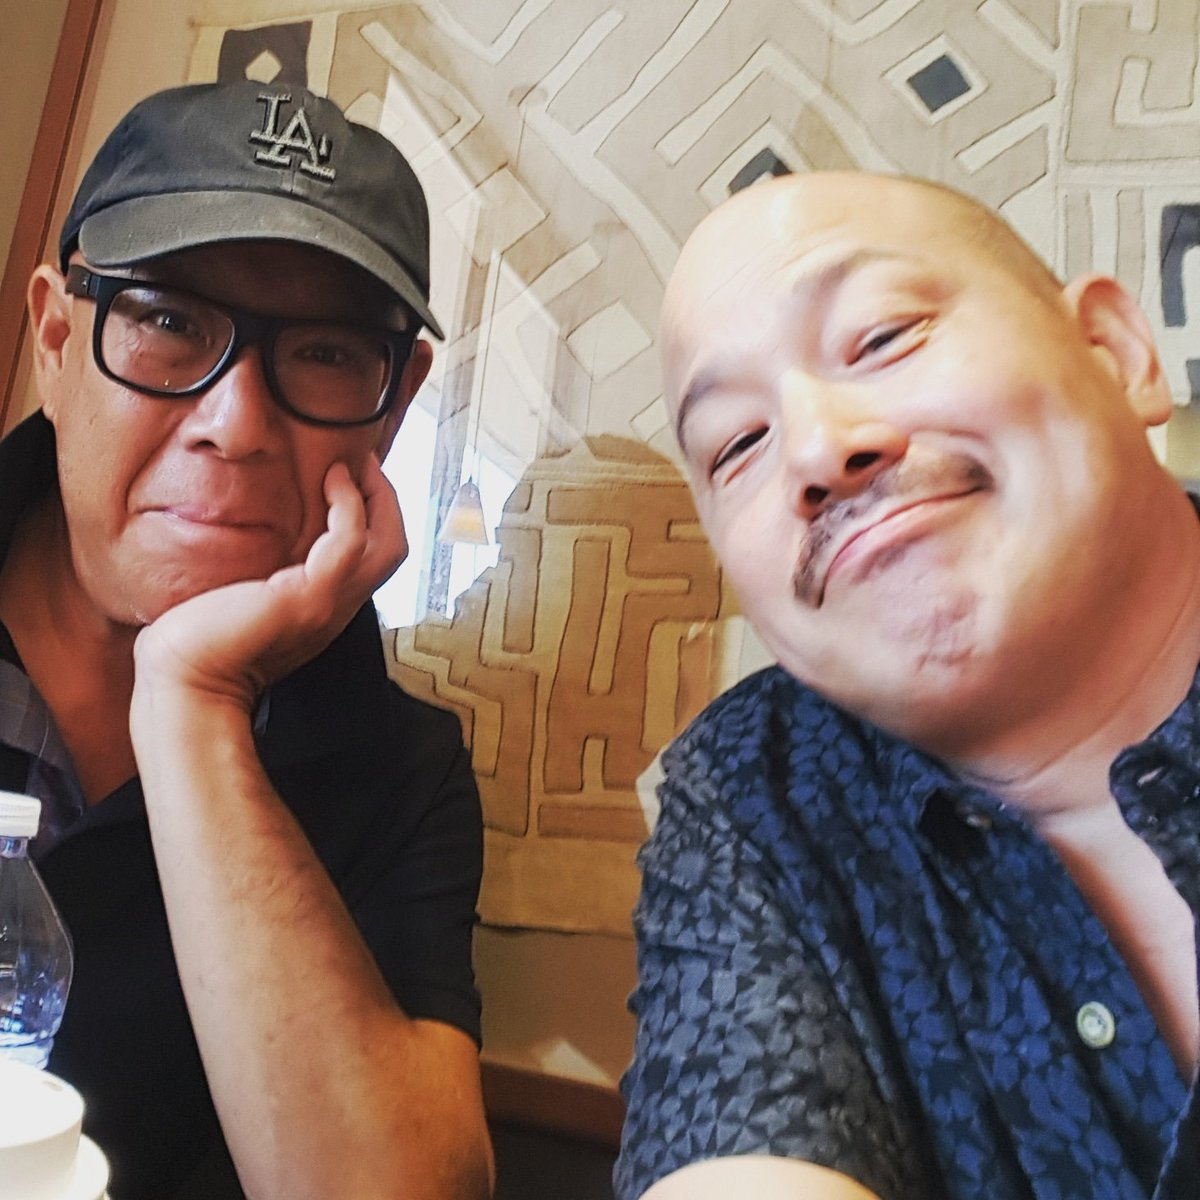 @MichaelPaulChan and I got together 25 years after #JoyLuckClub took his career to a whole &#39;nother level... the powerful effect that major studio-backed films can have on the careers of Asian American artists. Here&#39;s to a smashing #goldopen week for #CrazyRichAsians! #Inclusion <br>http://pic.twitter.com/xKiaXkv9Os